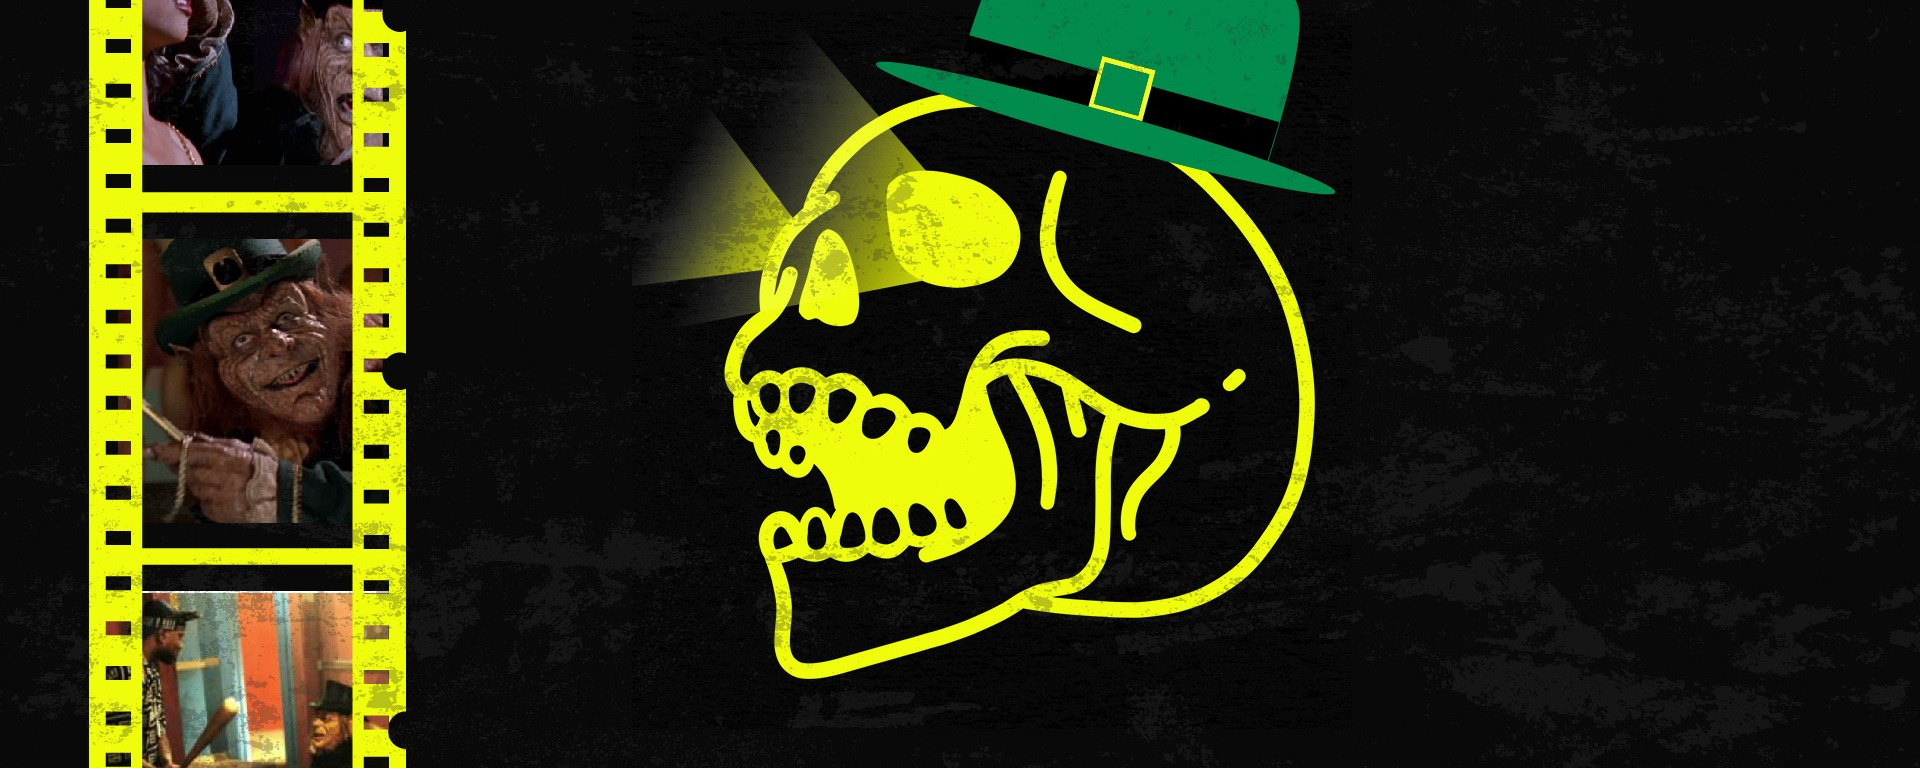 good bad movies logo skull with film reel with screenshots from leprechaun in the hood movie.